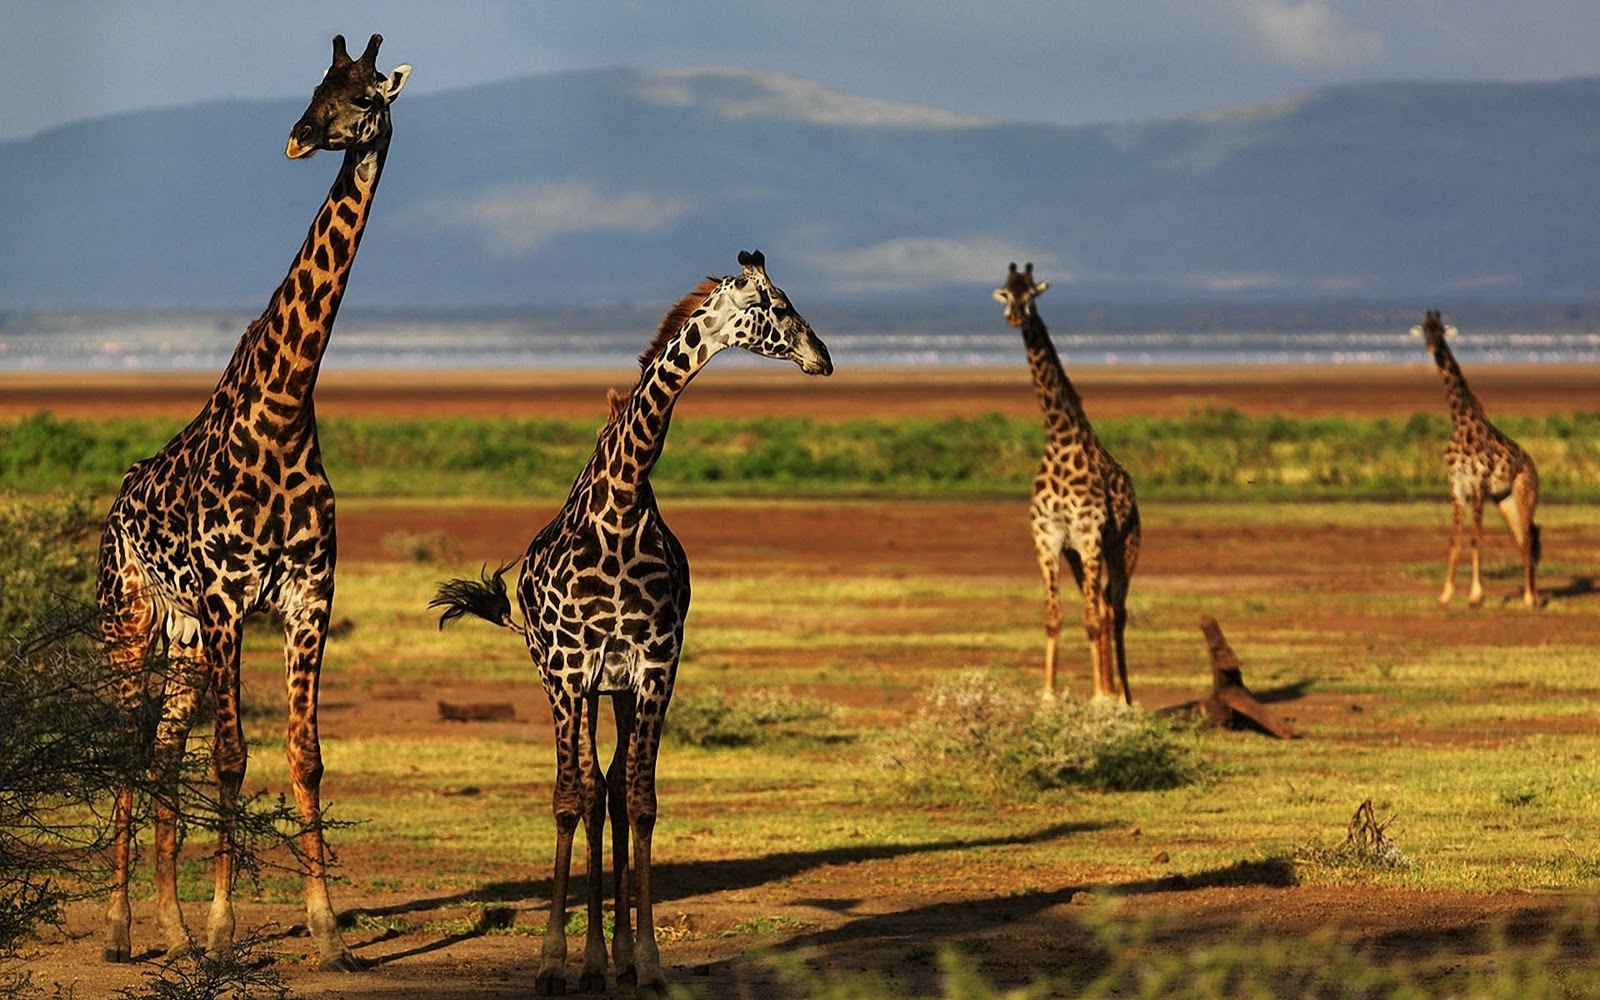 giraffe wallpapers hd pictures - photo #2